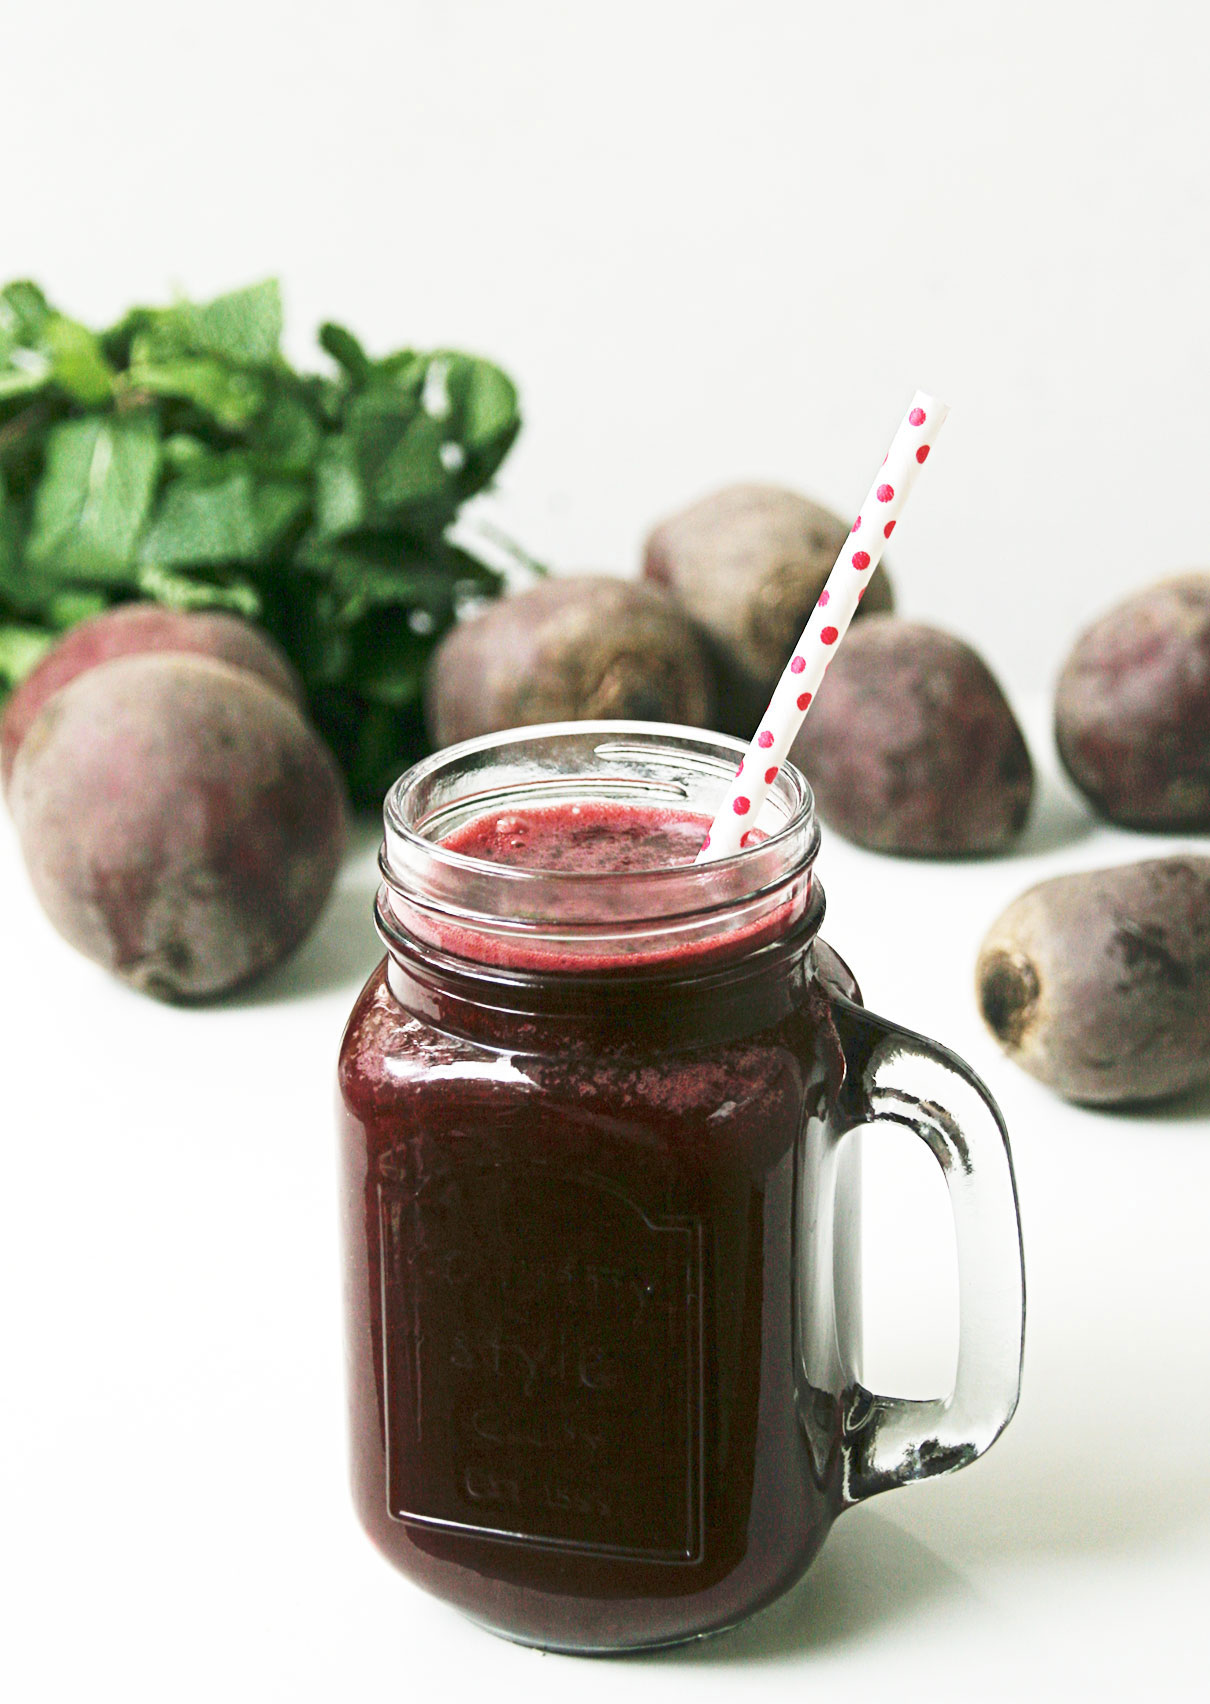 Beetroot carrot apple juice | ShareLoveNotSecrets.com/nl